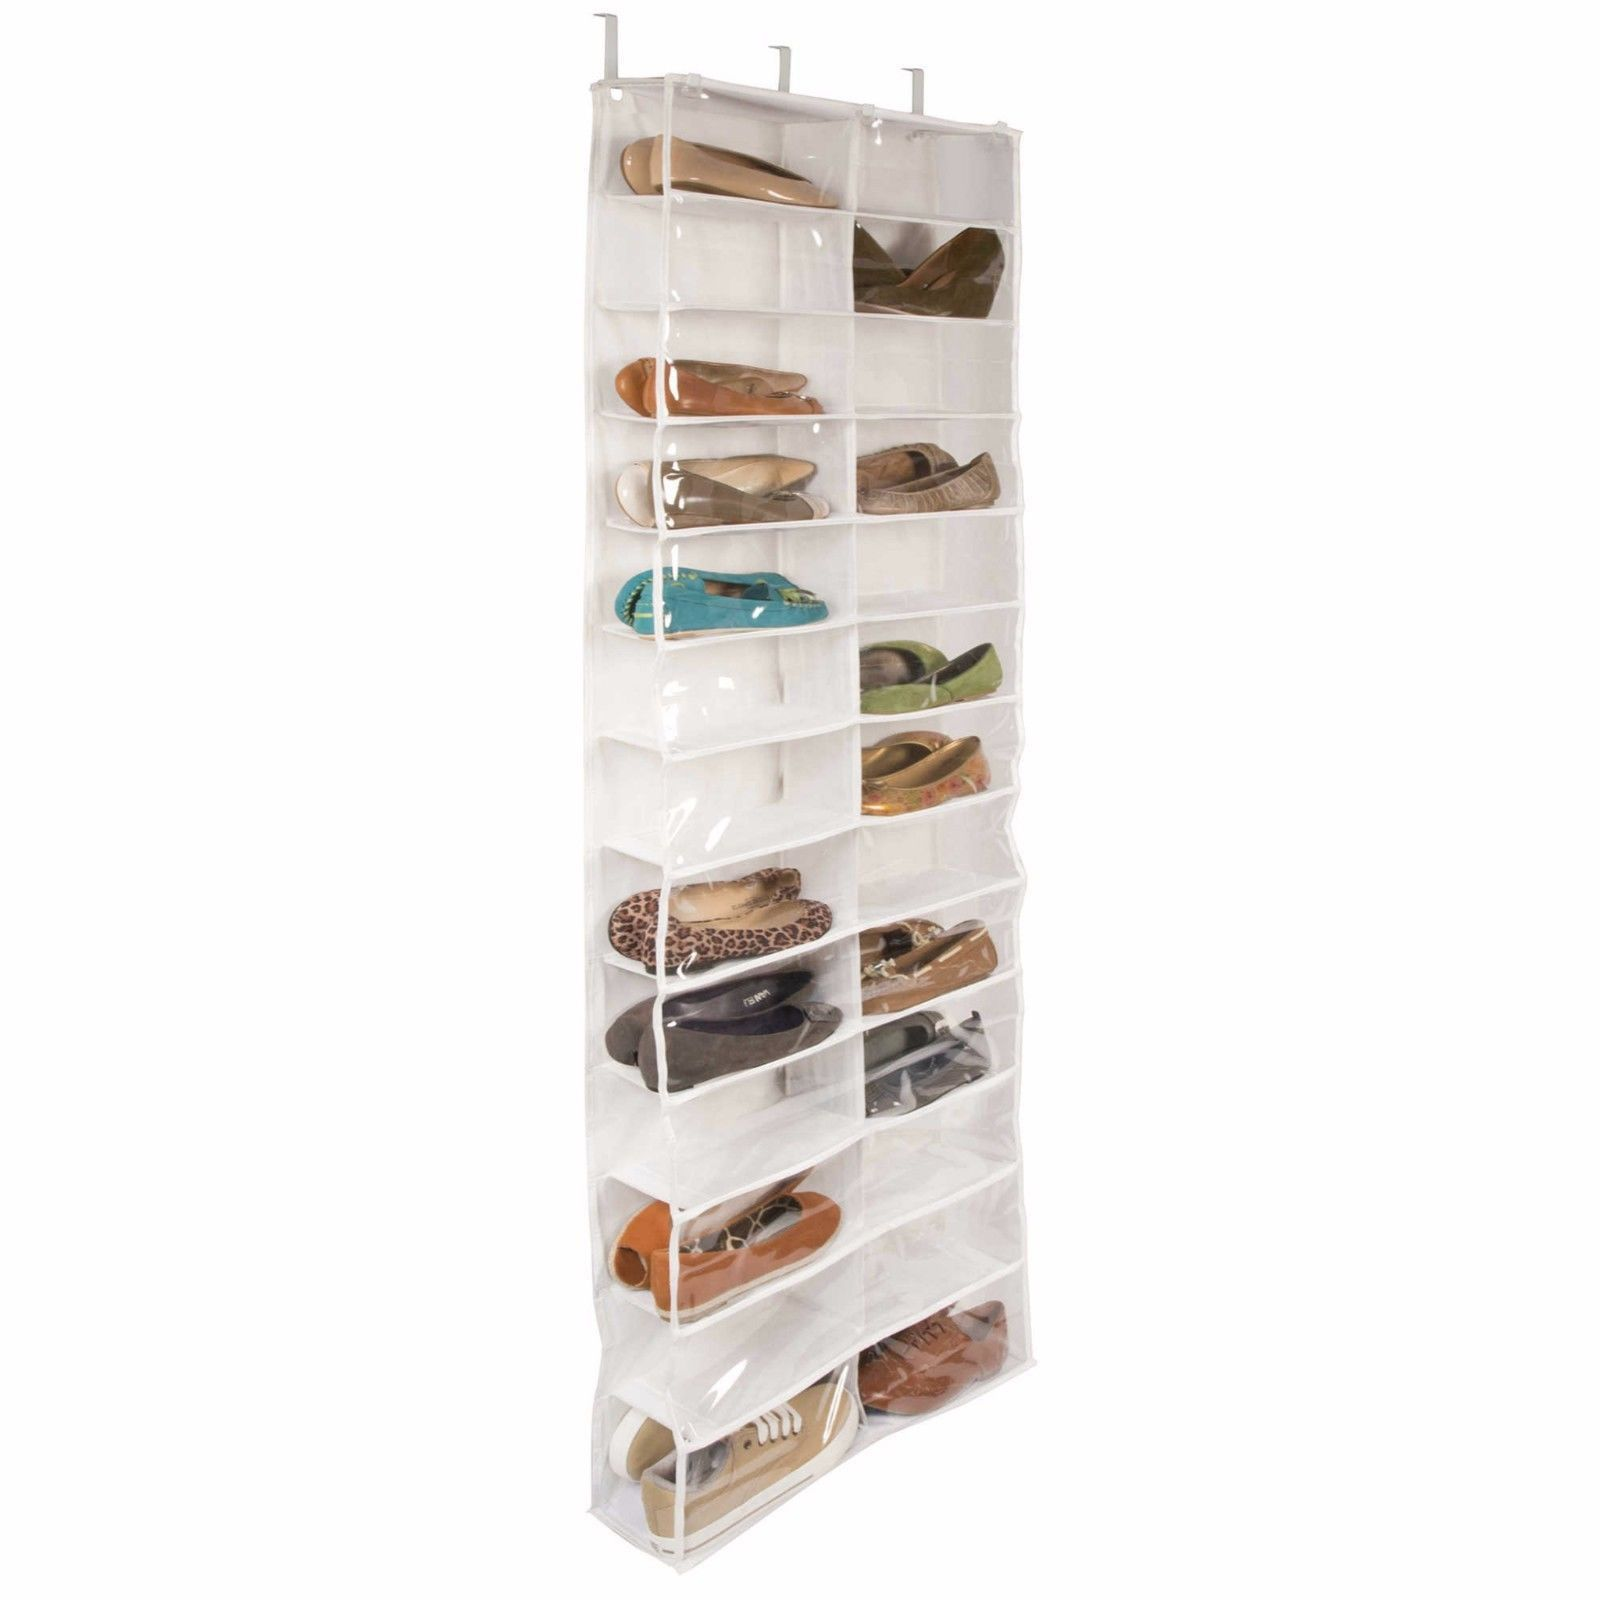 26 Pocket Over The Door Shoe Organizer Rack Hanging Storage